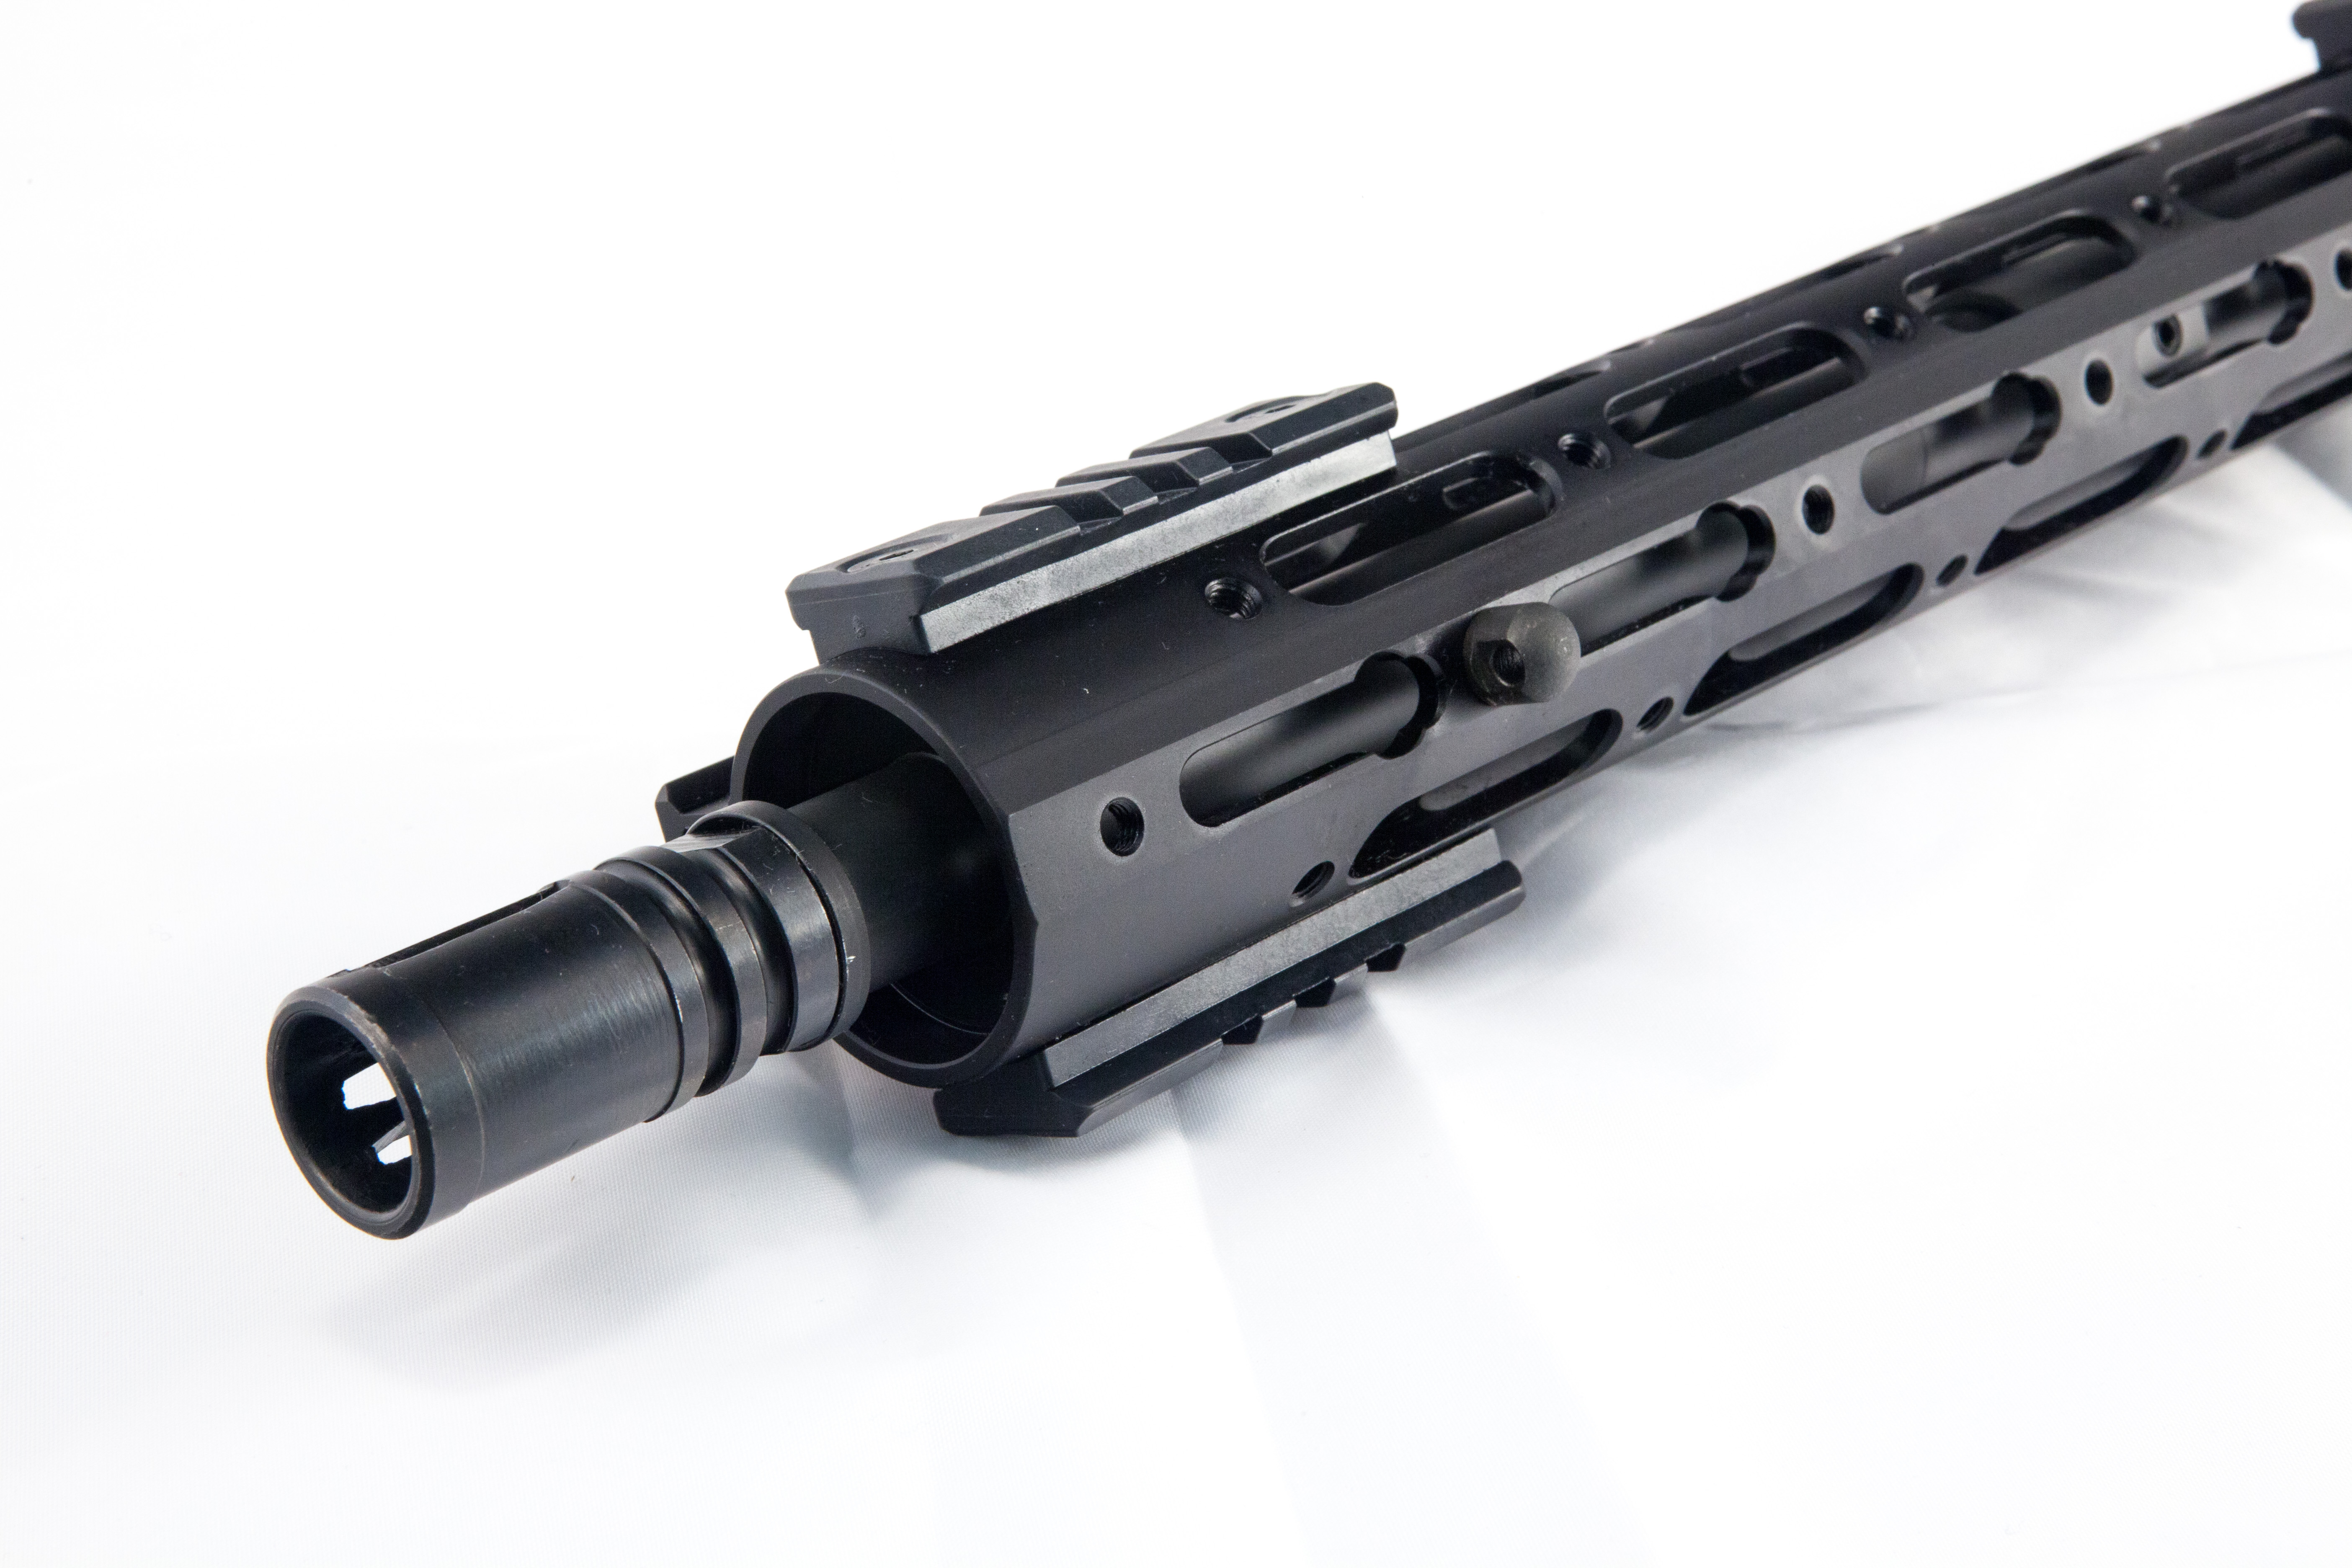 PNW Arms Signature Series 300 AAC Blackout 300BLK Complete Tactical AR 15 Upper Receiver Assembly DefenseReview.com DR 11 PNW Arms Signature Series 300 AAC Blackout (300BLK) Tactical AR 15 Carbine 16 Mid Length Upper Receiver and Ammo Combo Deal Available for 300 BLK CONUS Delivery Program Launch!